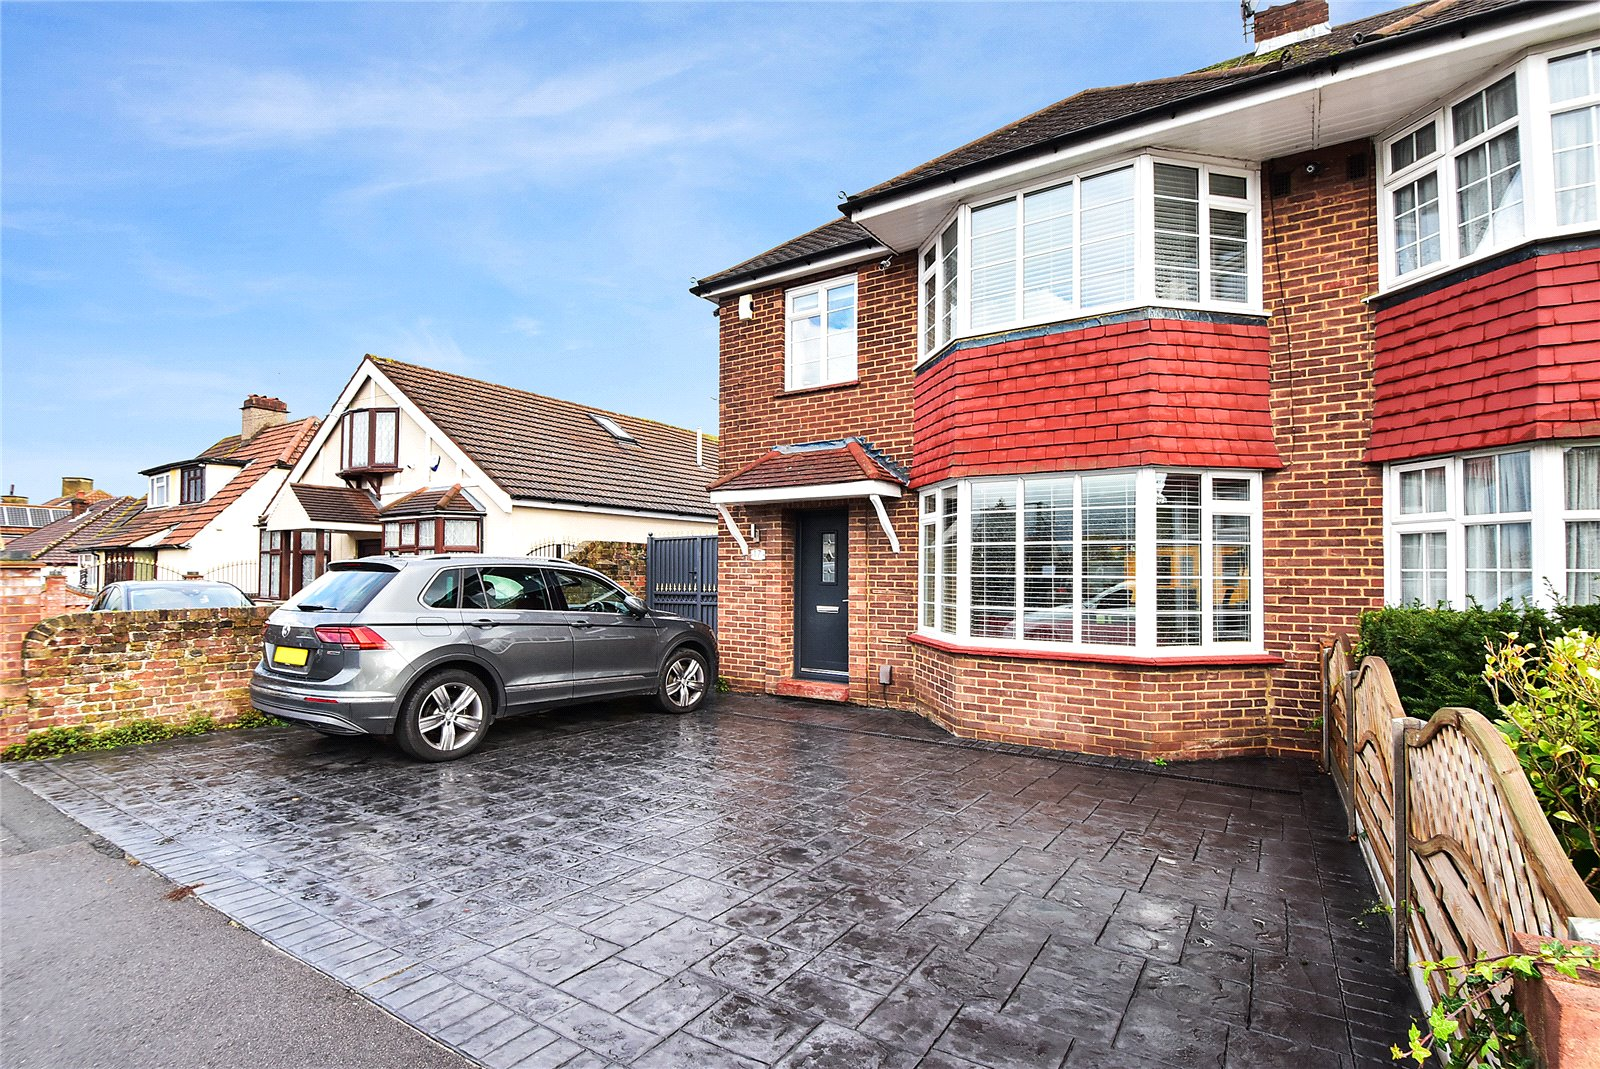 Lawrence Hill Road, West Dartford, Kent, DA1